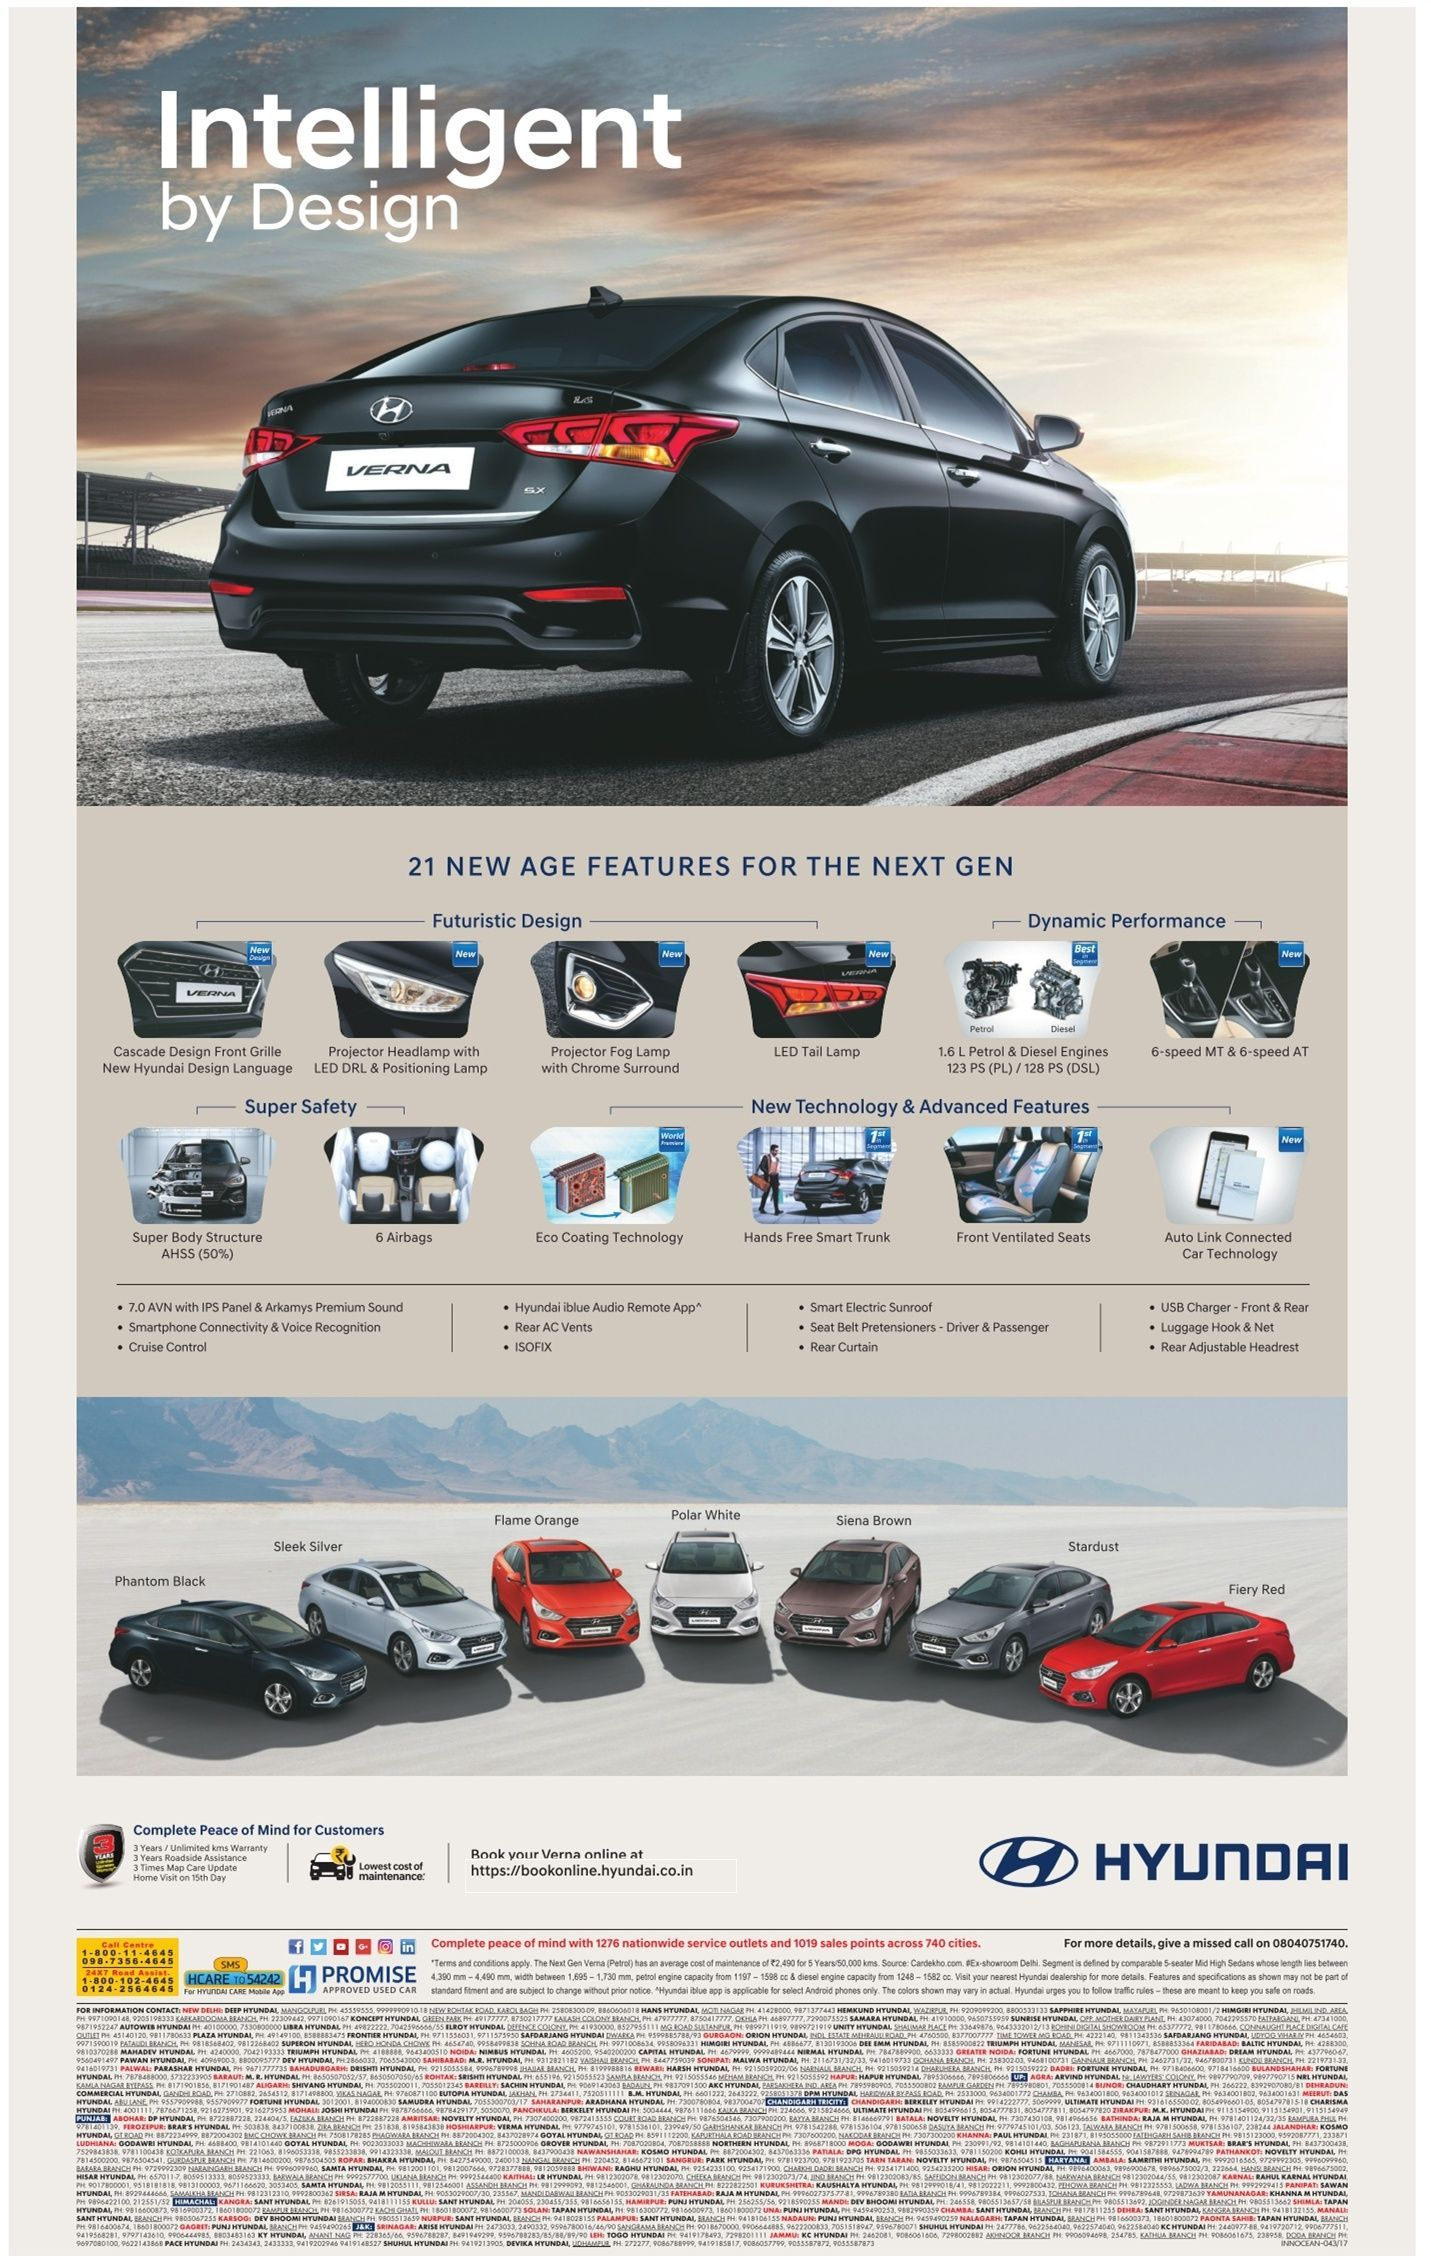 Hyundai Verna Intelligent By Design Ad Times Of India Delhi Check Out More Car Car C In 2020 Hyundai Car Advertising Car Collection